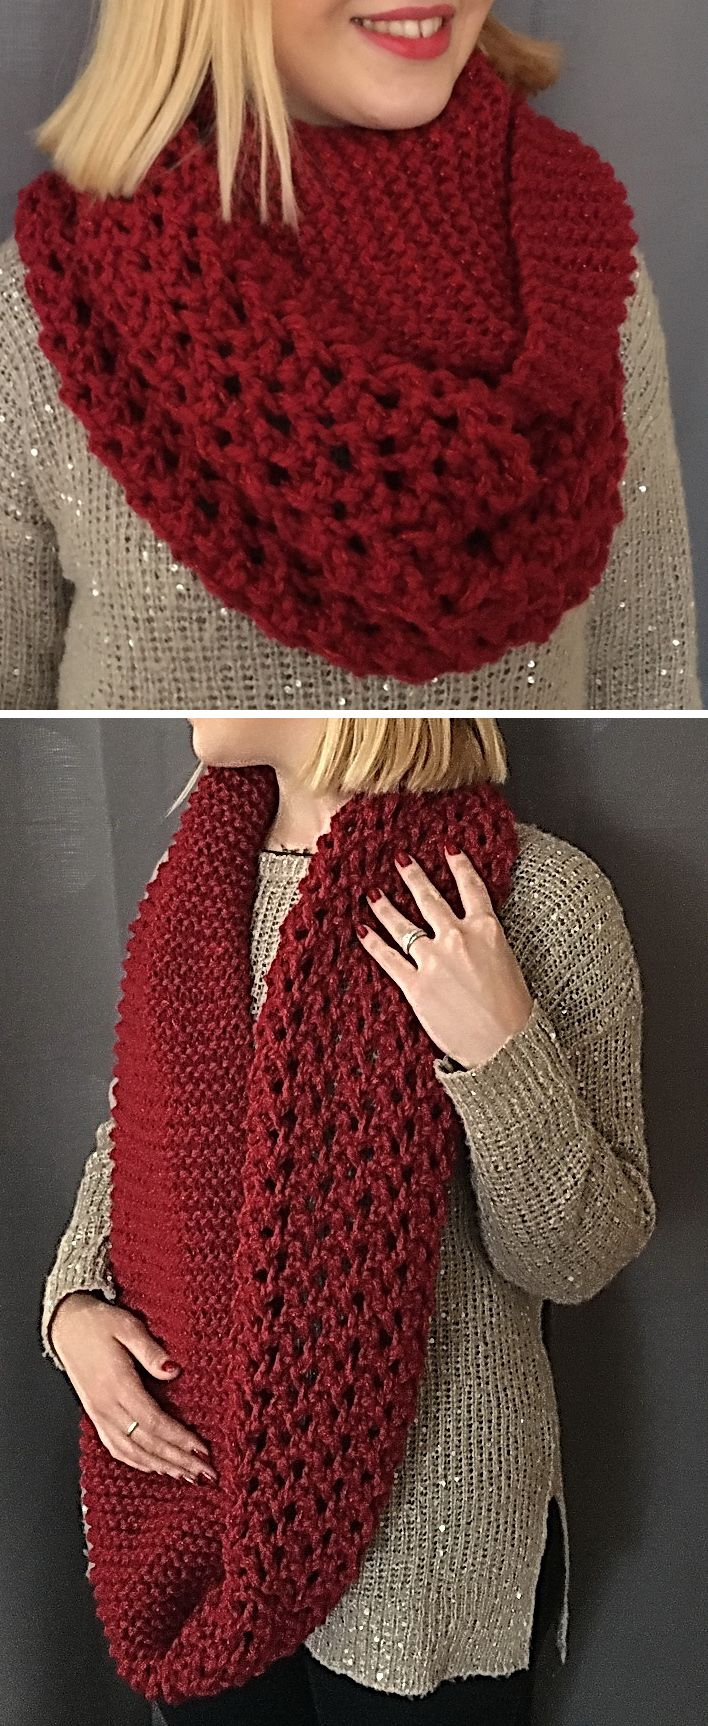 Free until jan 7 2018 only knitting pattern for lily red snood free until jan 7 2018 only knitting pattern for lily red snood free bankloansurffo Gallery